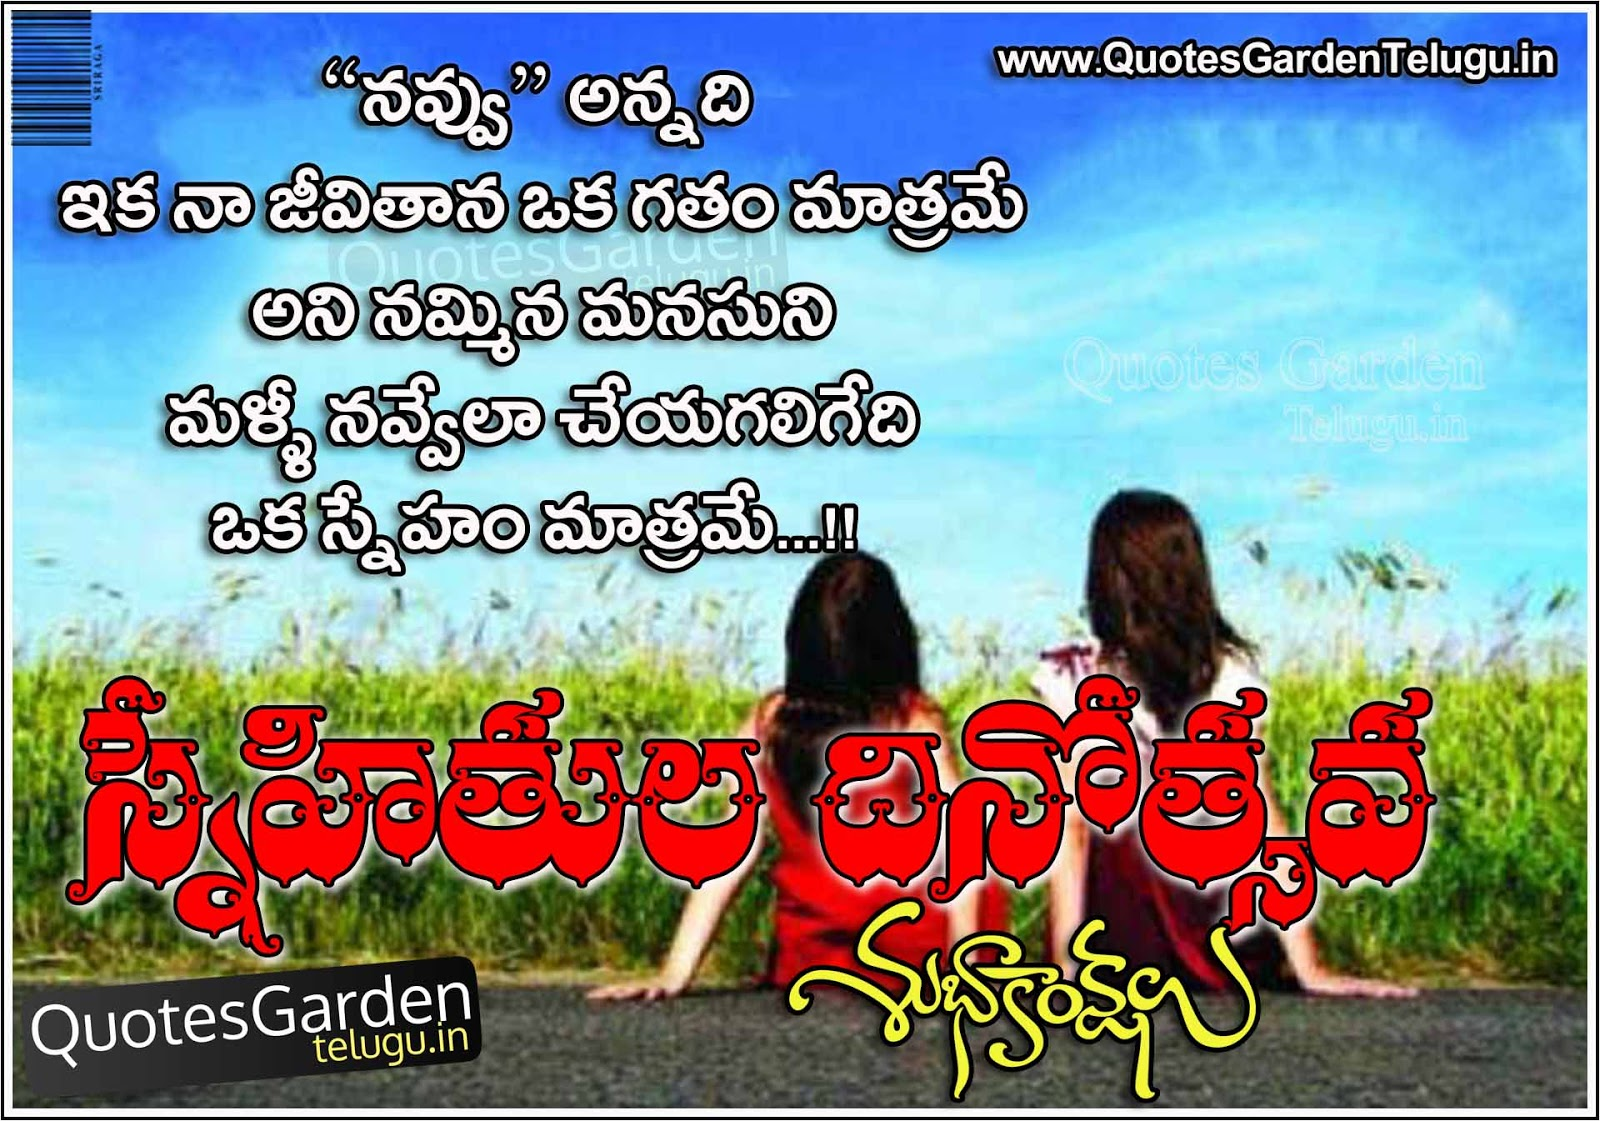 Happy Friendship Day Greetings In Telugu 2016 Quotes Garden Telugu